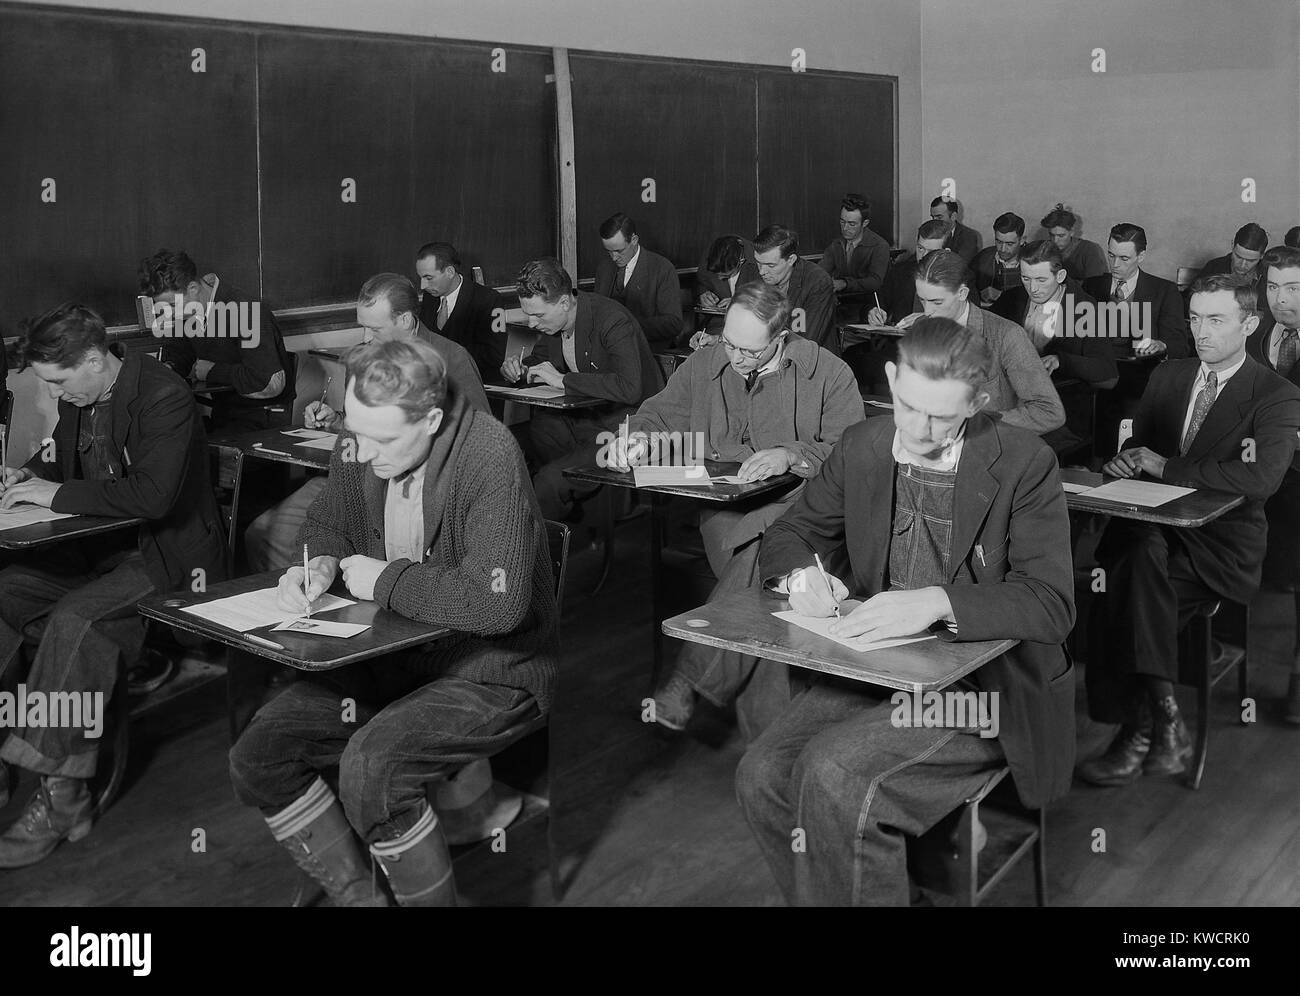 Skilled and unskilled laborers taking the TVA examination, Clinton, Tennessee. Nov. 1933. The Tennessee Valley Authority - Stock Image